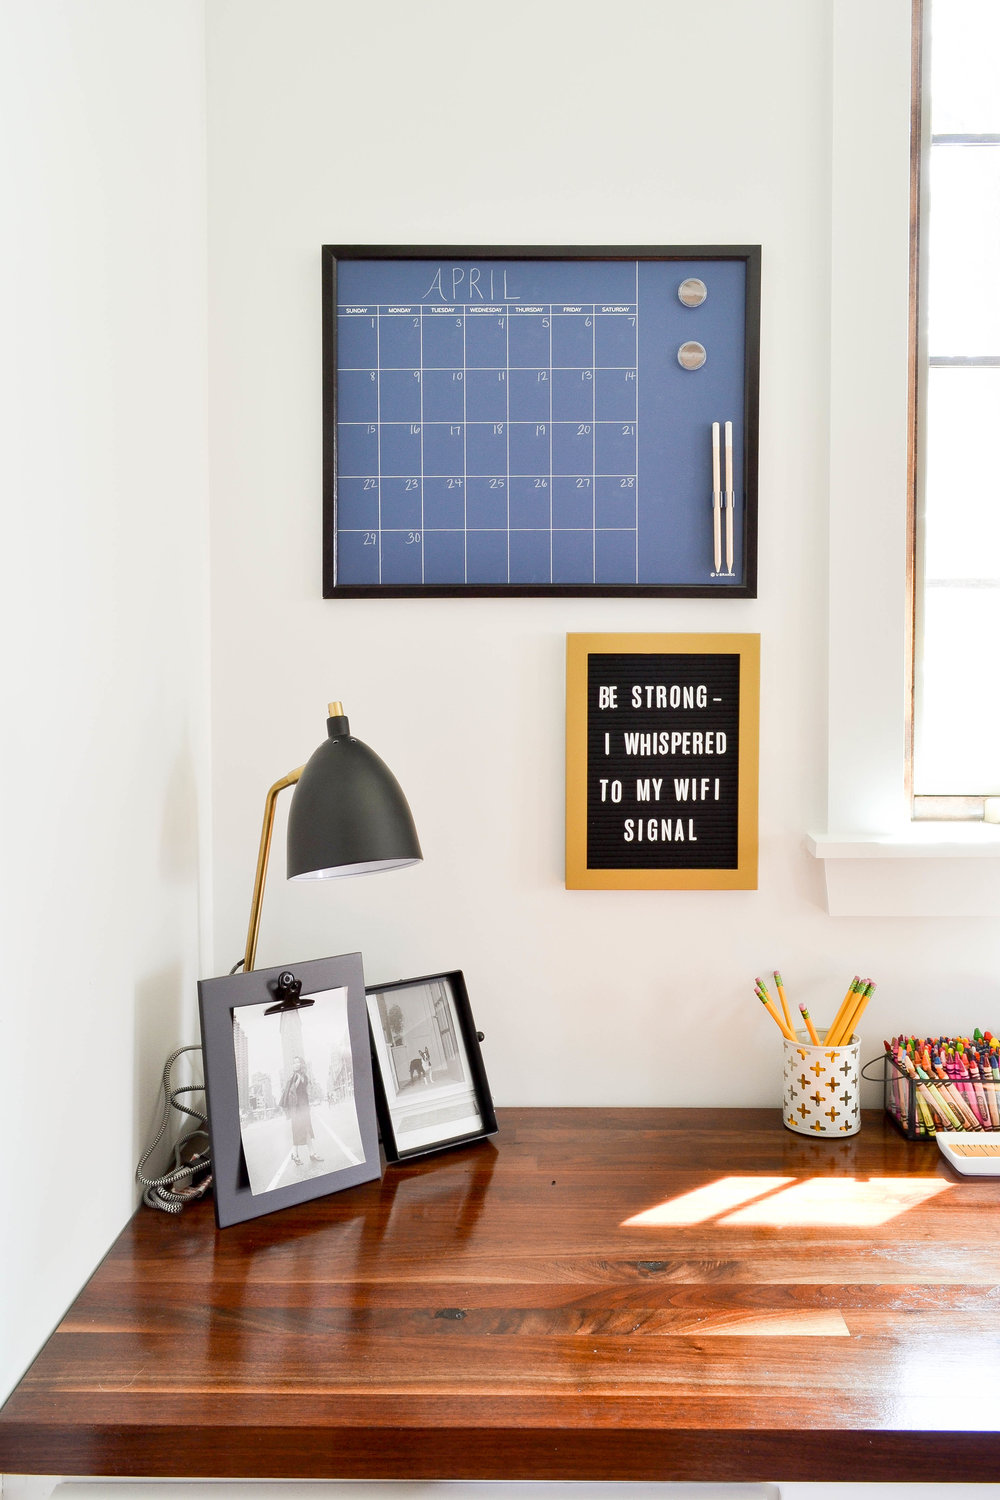 Gray Oak Studio Pilgrim Project Office Letterboard and calendar